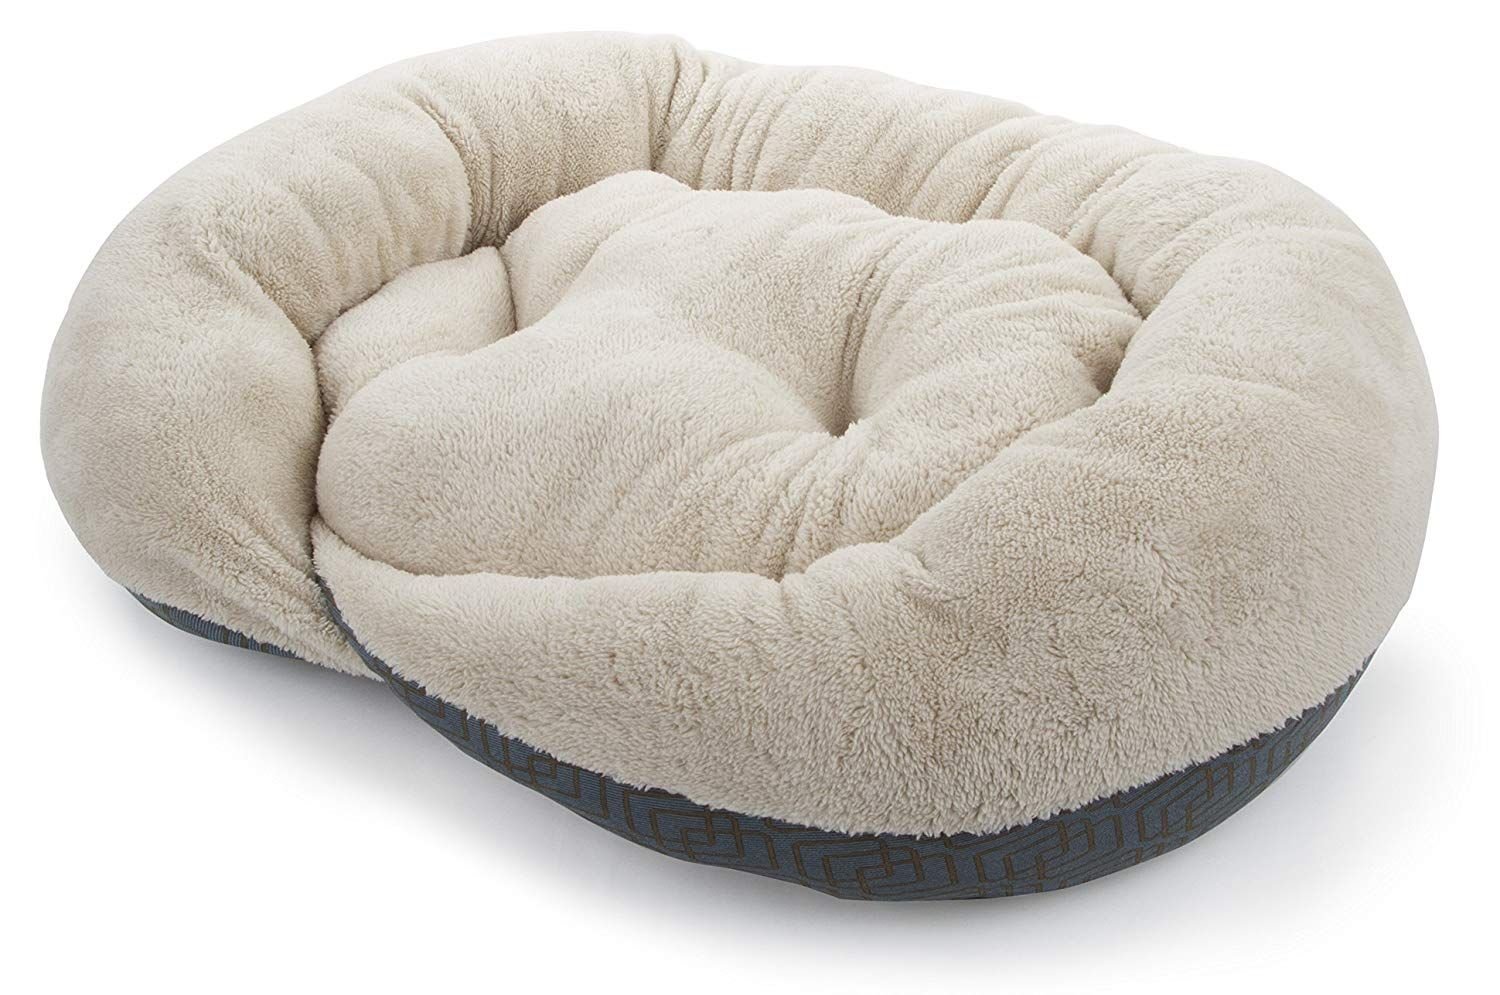 Peachy Trustypup Dream Boat Dog Bed For Cuddle Large Learn Alphanode Cool Chair Designs And Ideas Alphanodeonline